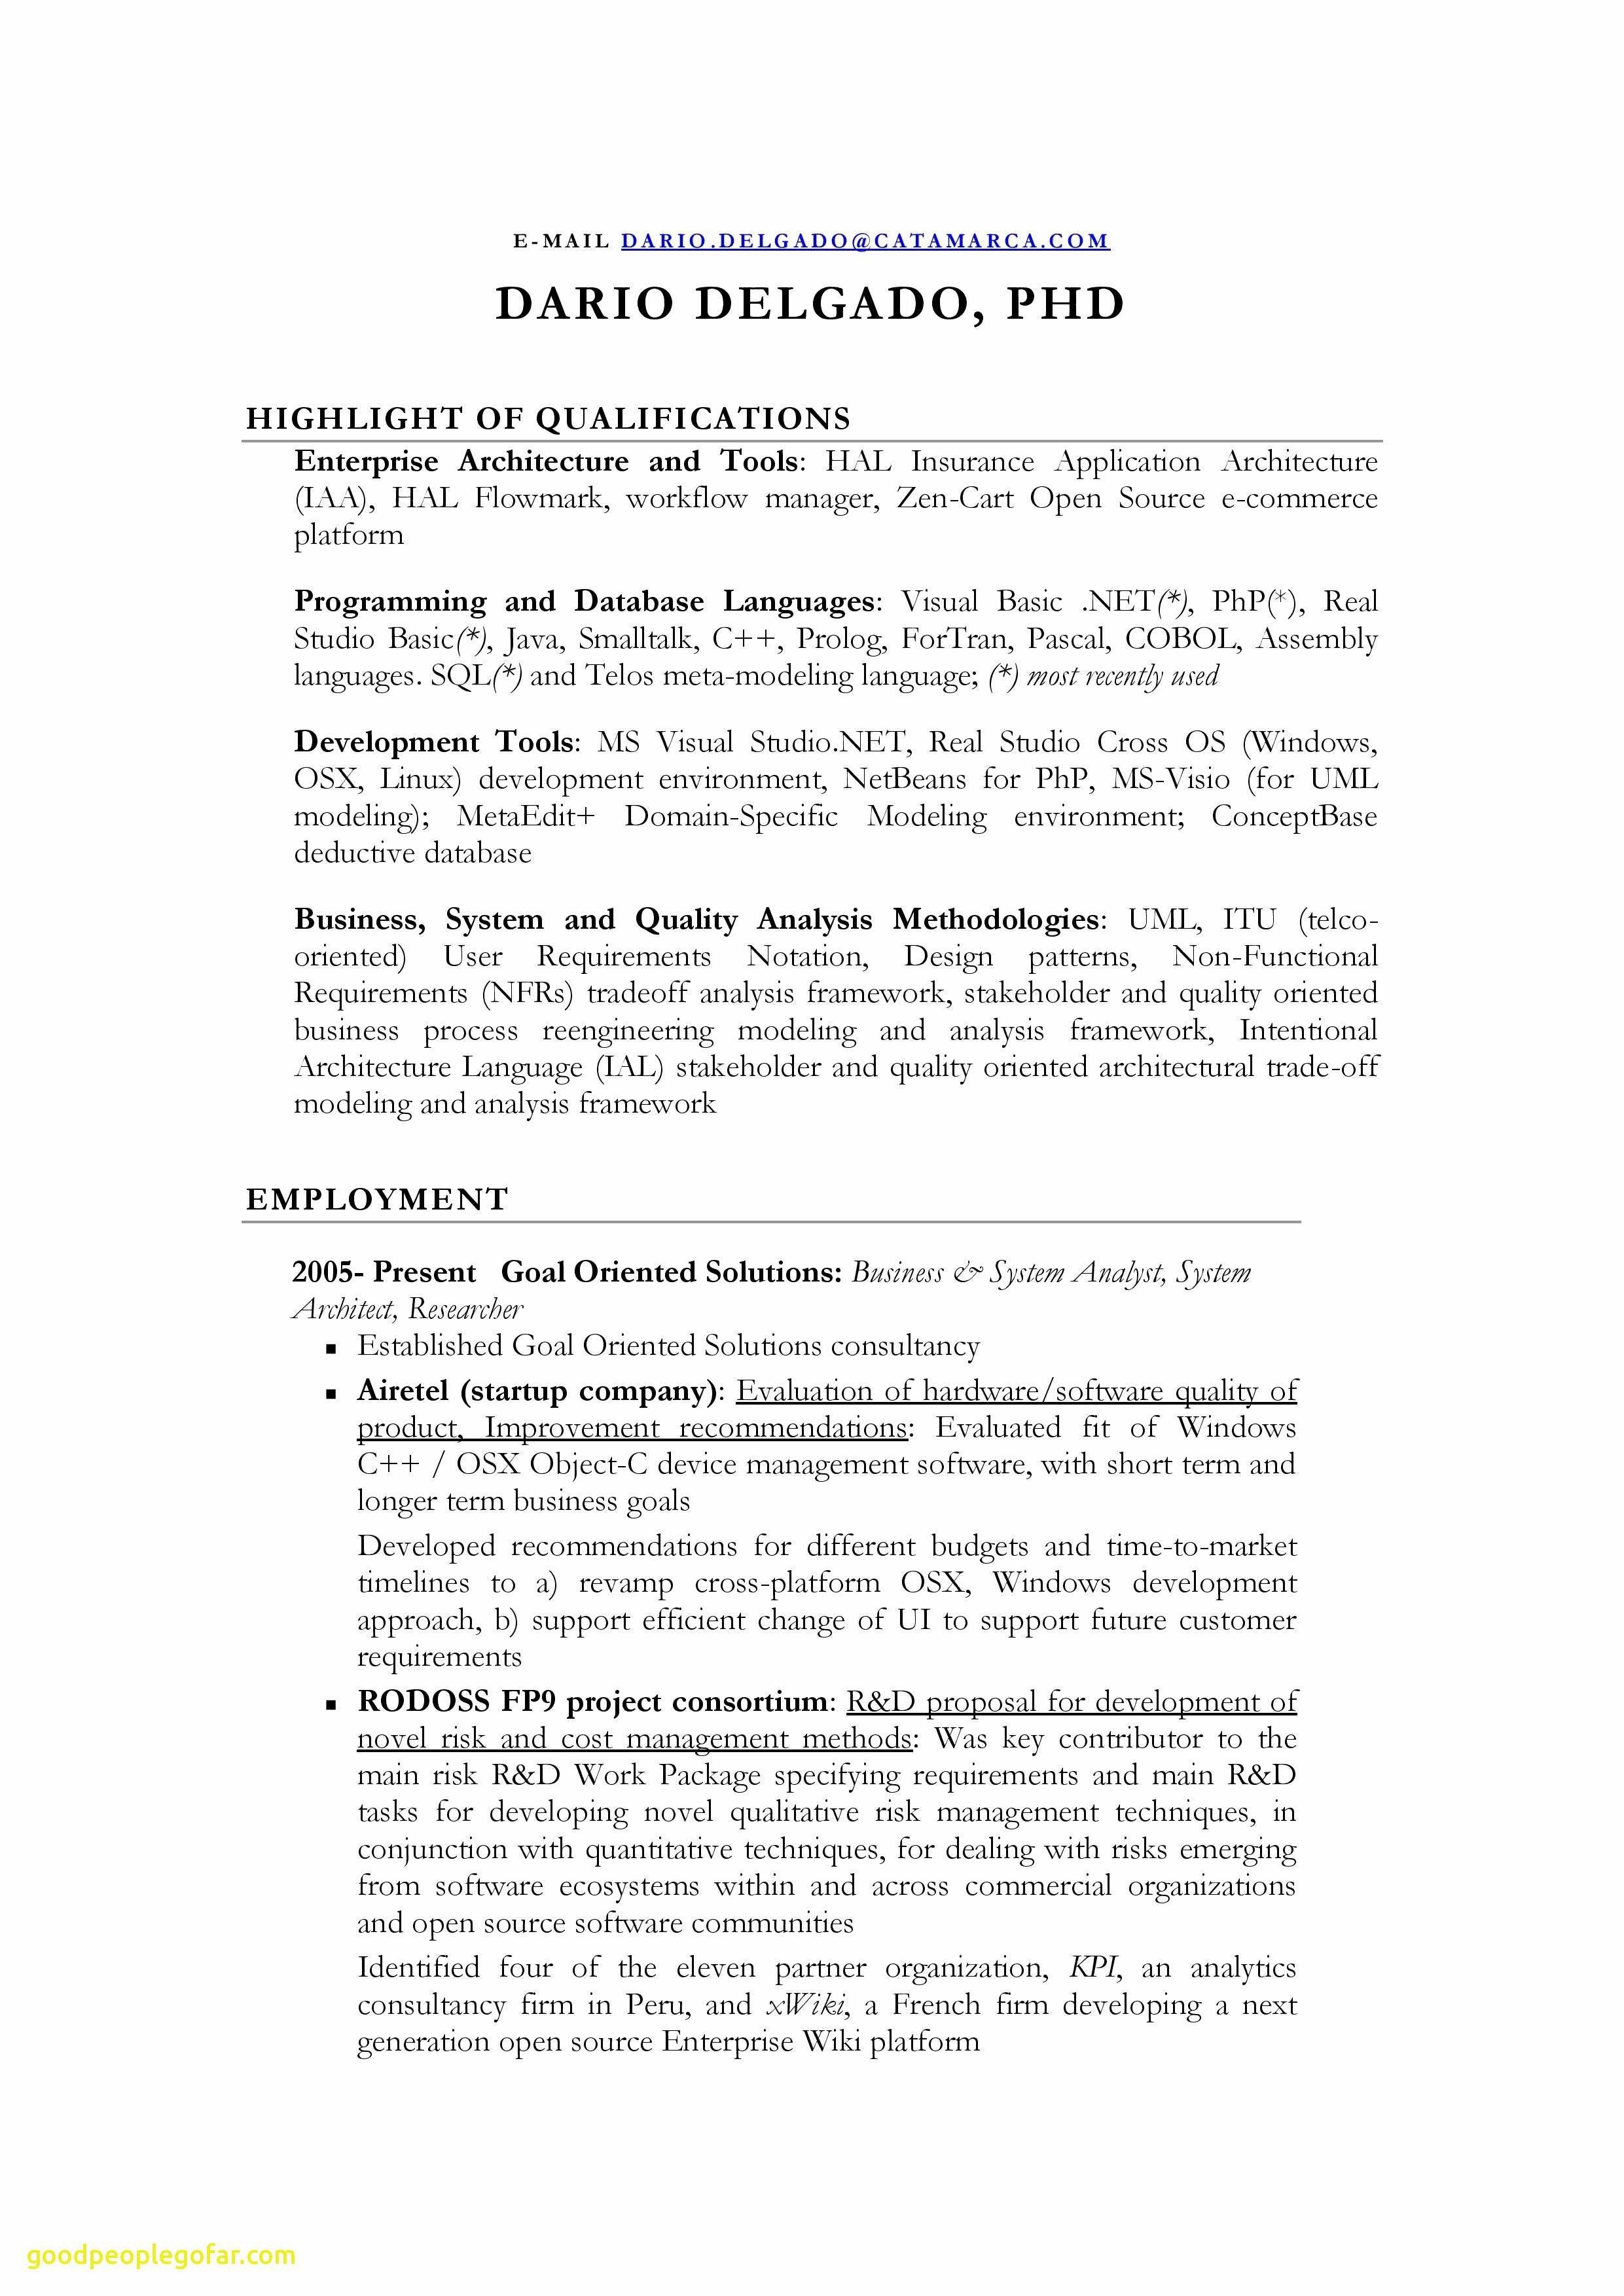 Analyst Resume Template - System Analyst Resume Beautiful Fresh Programmer Resume Template